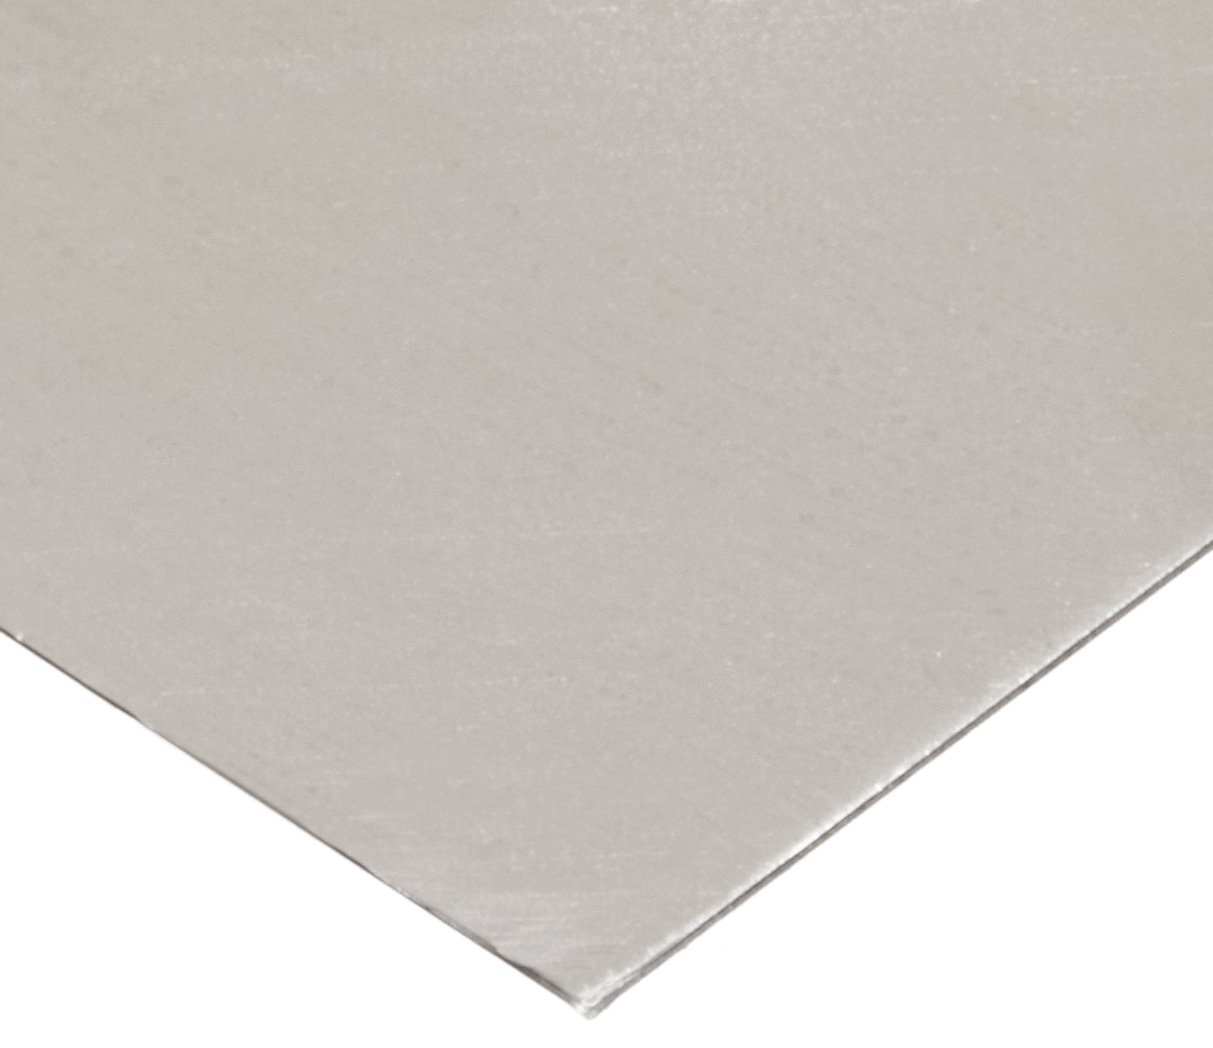 Mill 316 Stainless Steel Sheet Unpolished 24 Length AMS 5513//SAE AMS 5516 20 Width Finish 0.010 Thickness